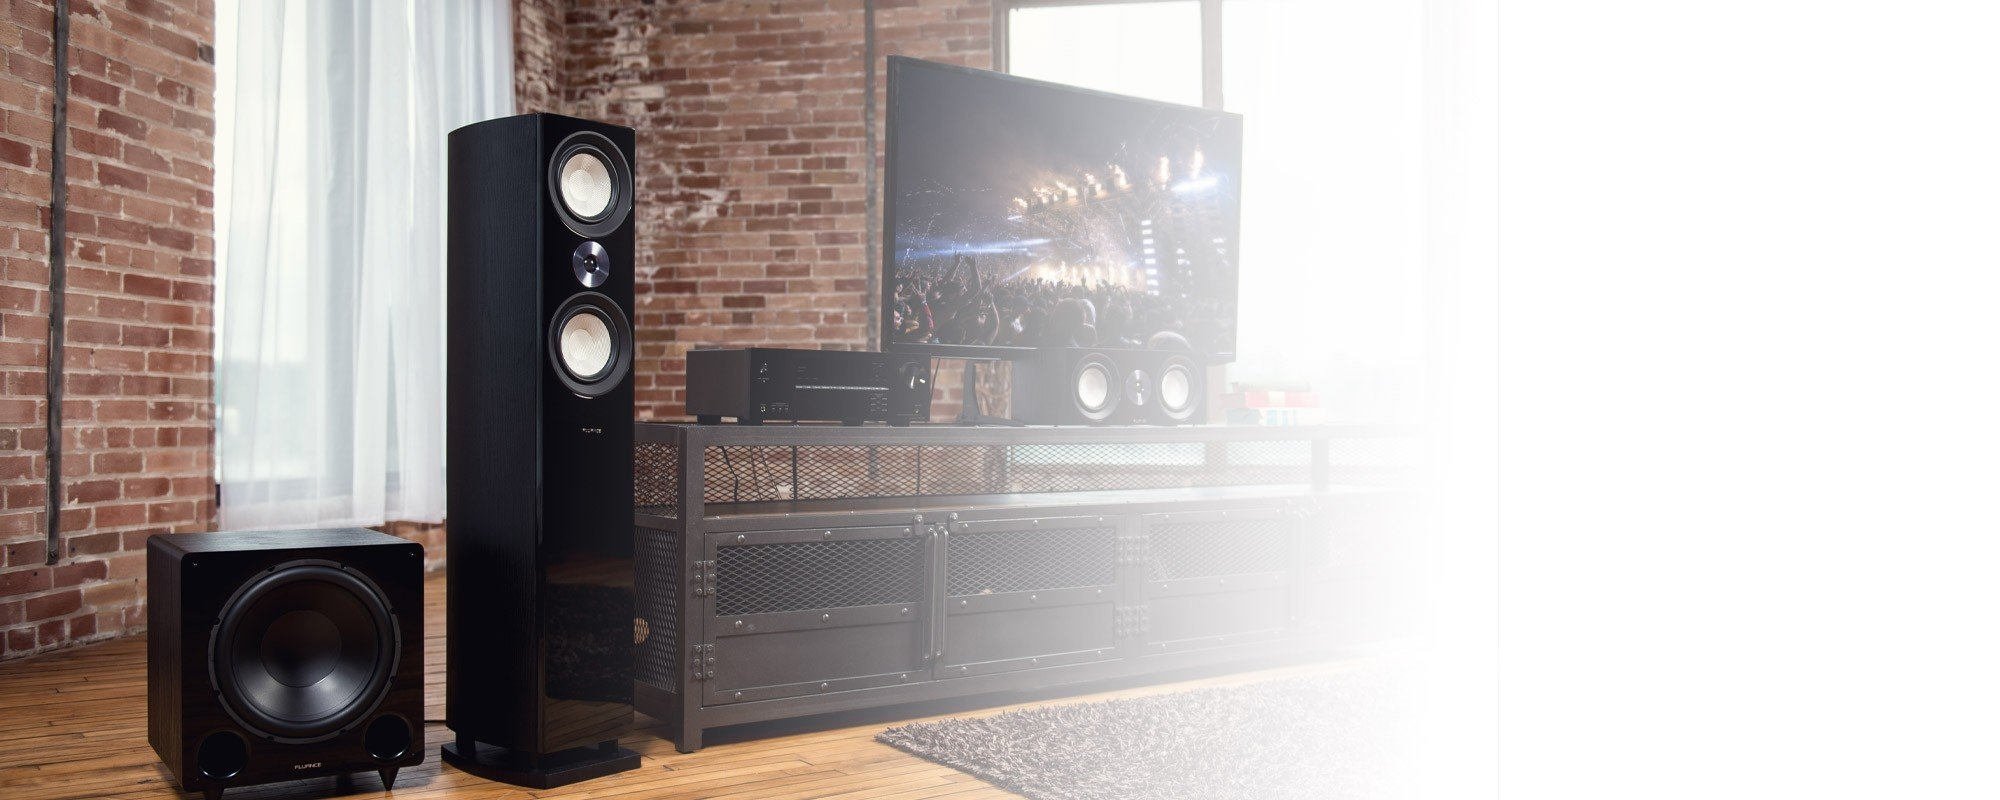 Reference Surround Sound Home Theater 5.1 Channel Speaker System with DB12 Subwoofer - Lifestyle Desktop